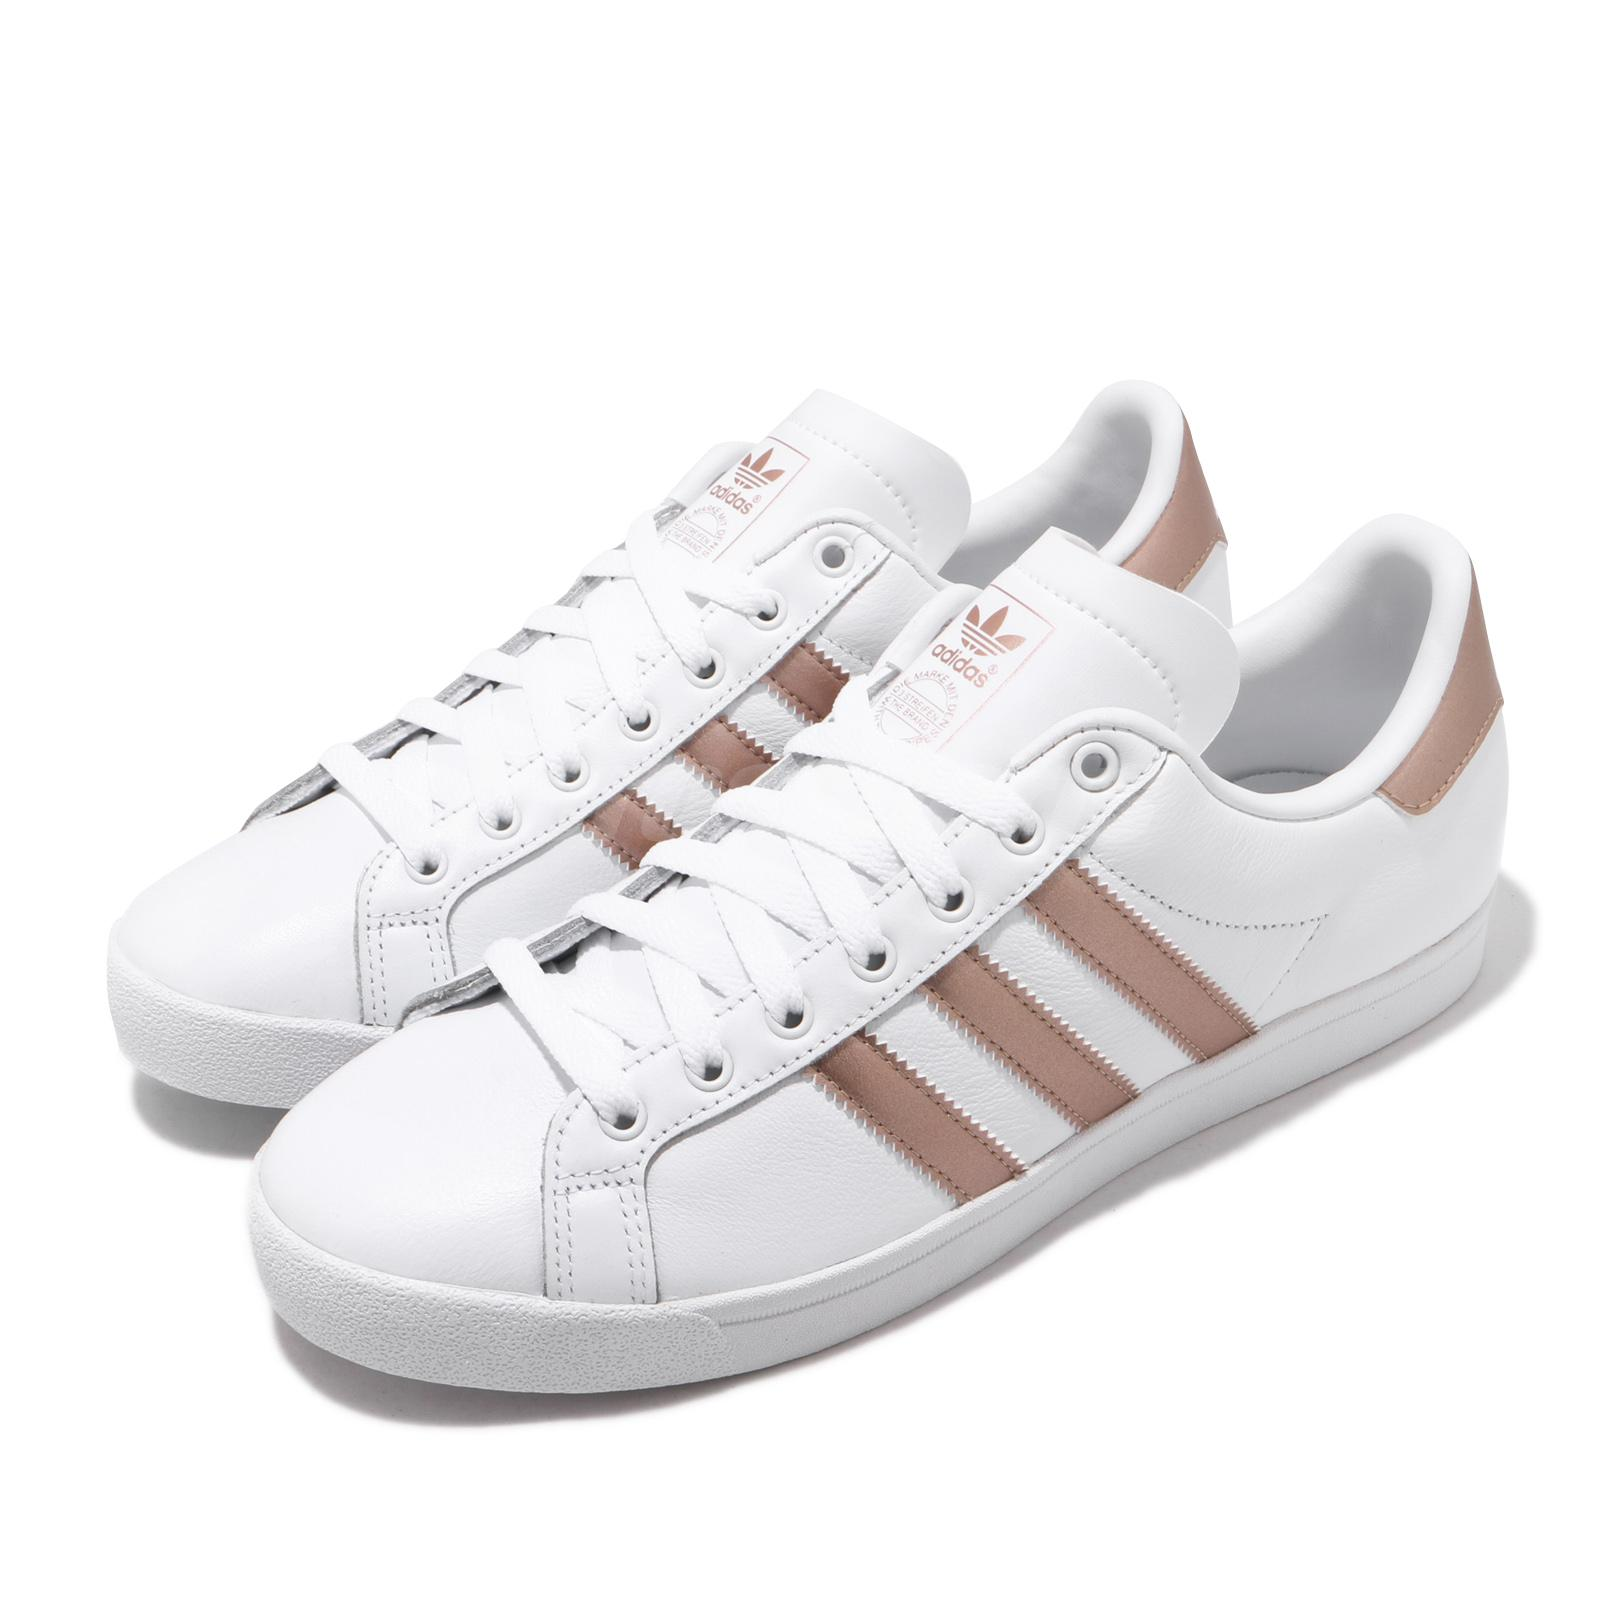 Détails sur adidas Originals Coast Star W White Copper Metallic Women Classic Shoes EE6201